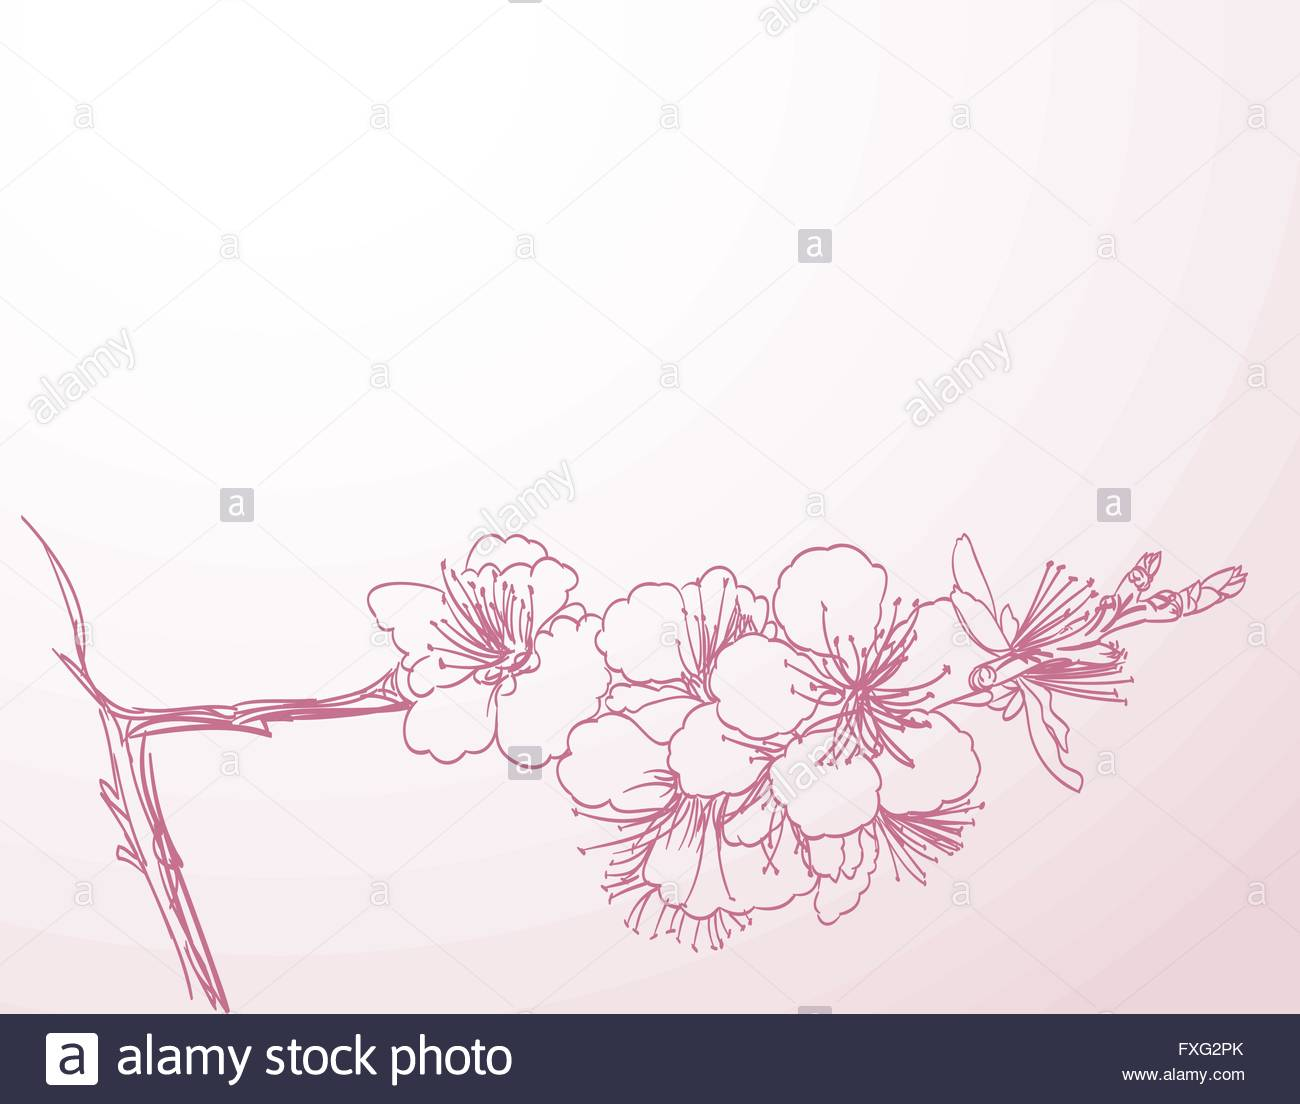 1300x1104 Blossoming Tree Line Art Hand Drawing. Spring Stylish Horizontal